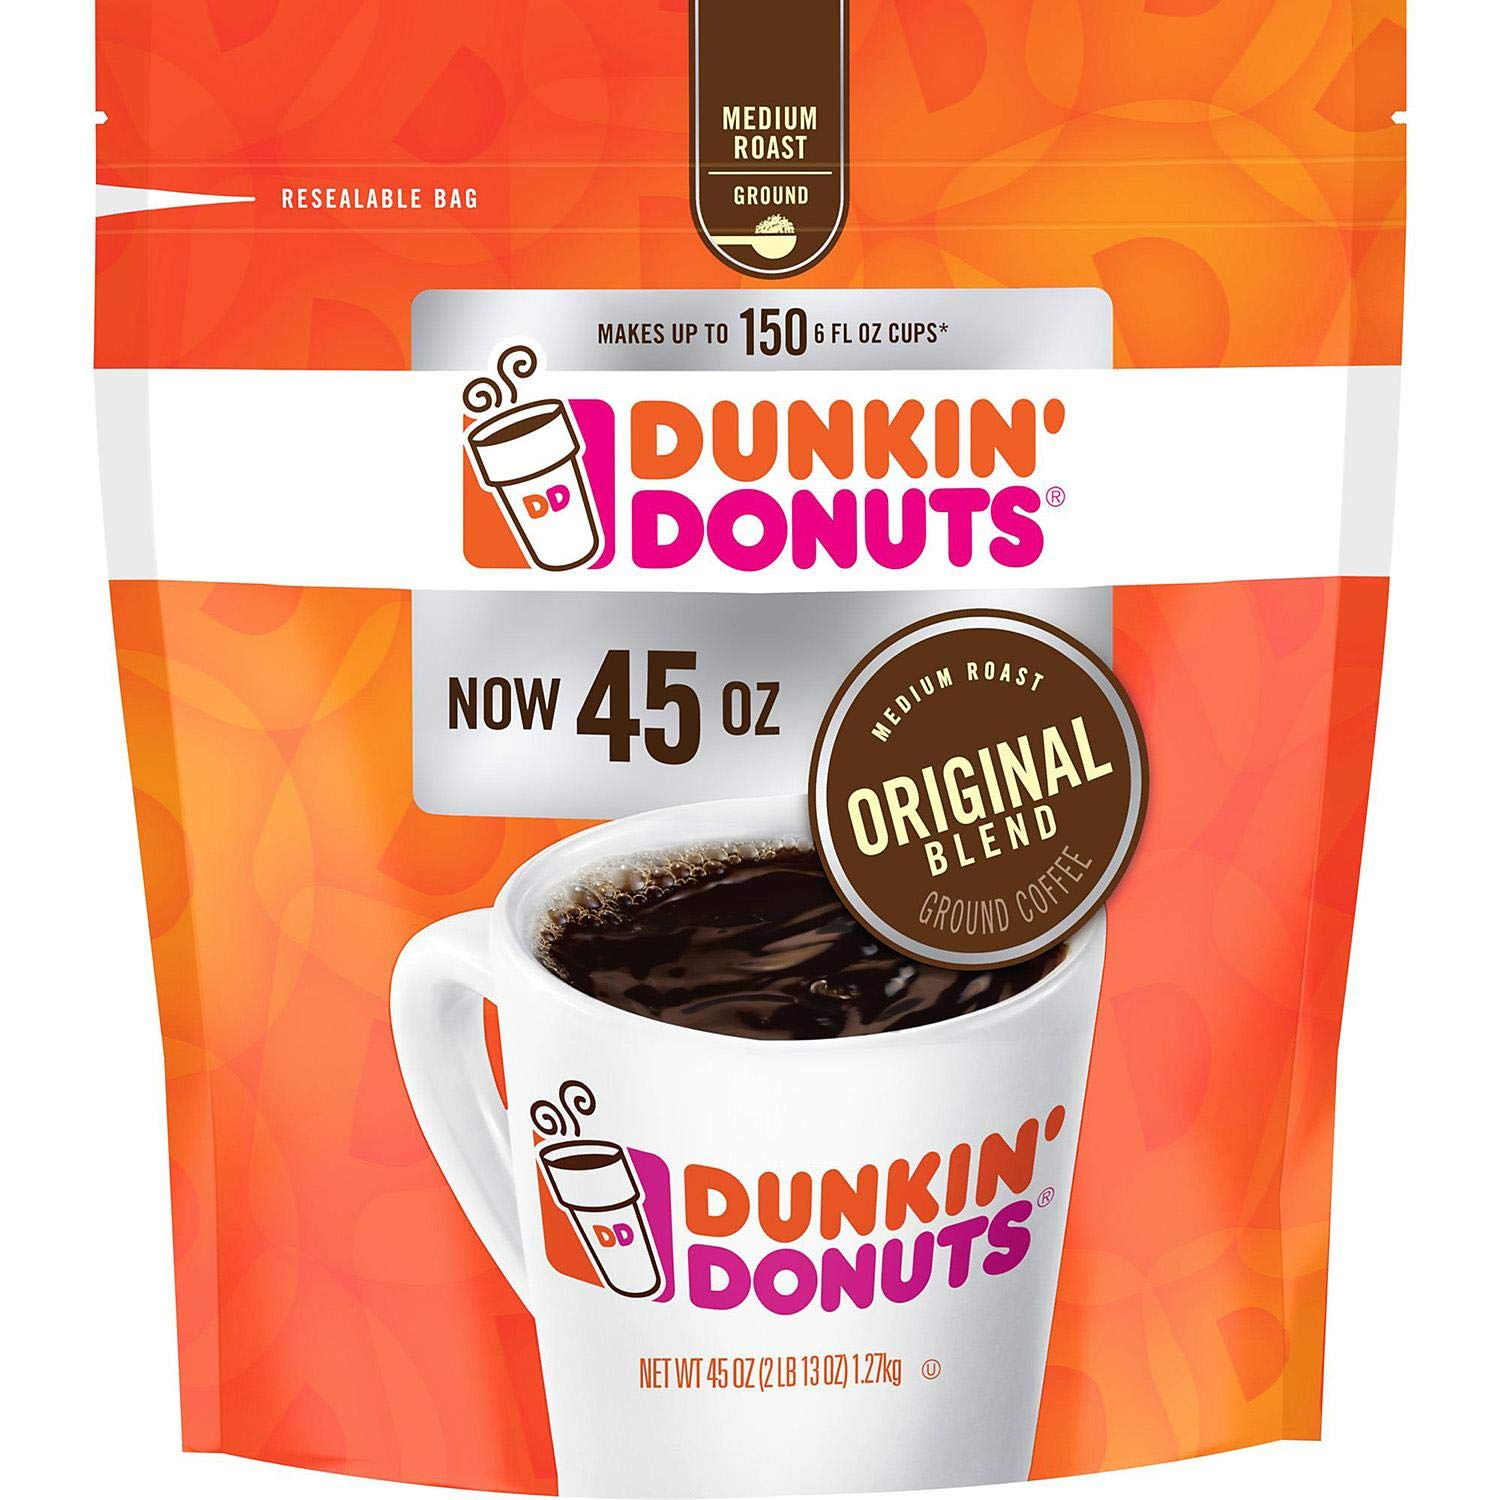 Dunkin' Donuts Ground Coffee, Original Blend Medium Roast, 90 Ounce by Dunkin' Donuts